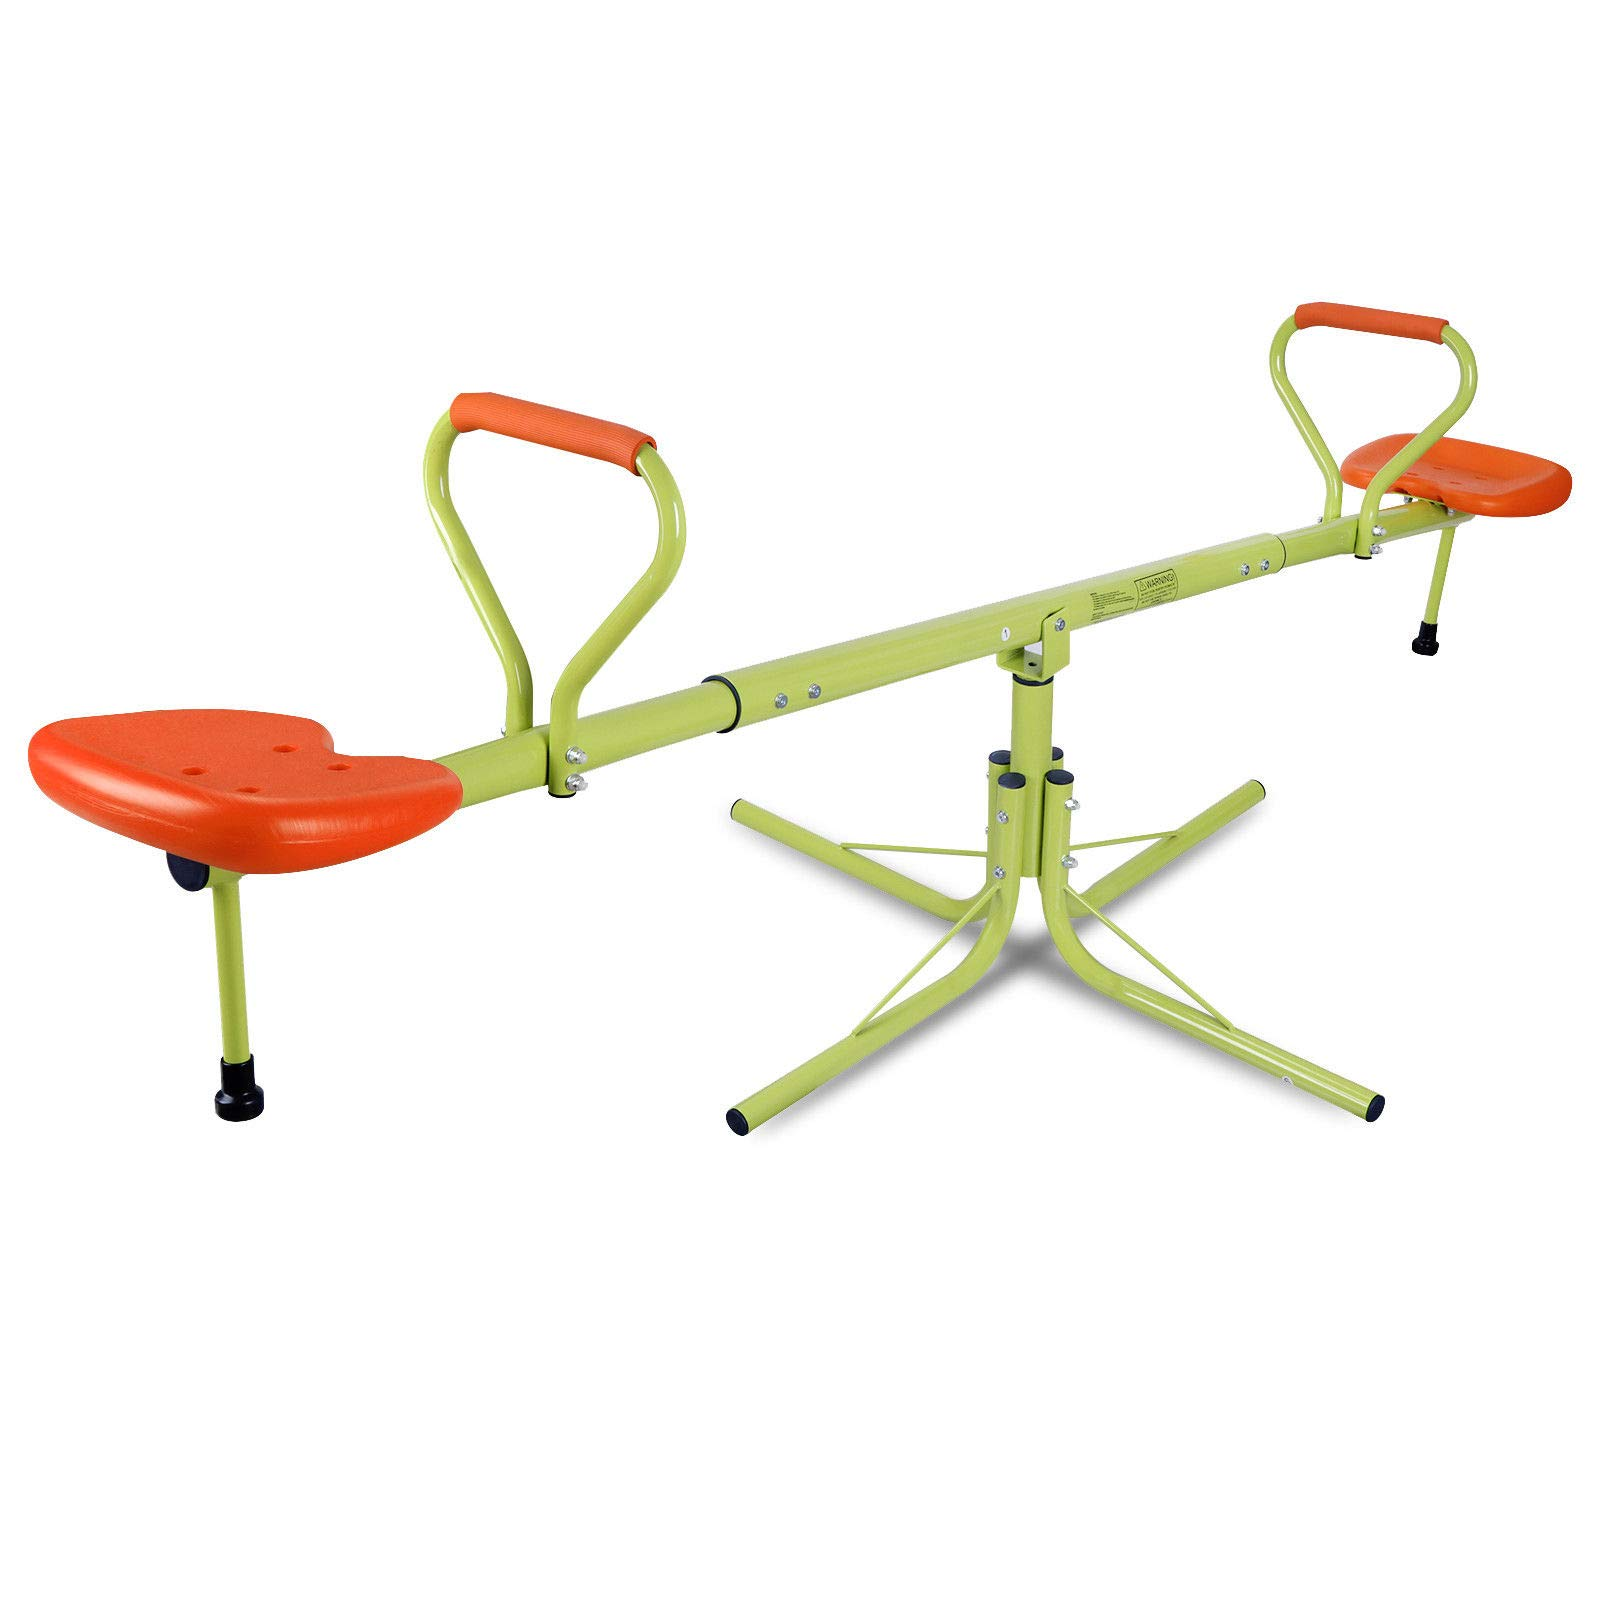 Outdoor Fun 360 Degree Spinning Seesaw for Kids, Children Teeter-Totter Play Set, Playground Equipment Swivel Toys, Ages 3 - 7